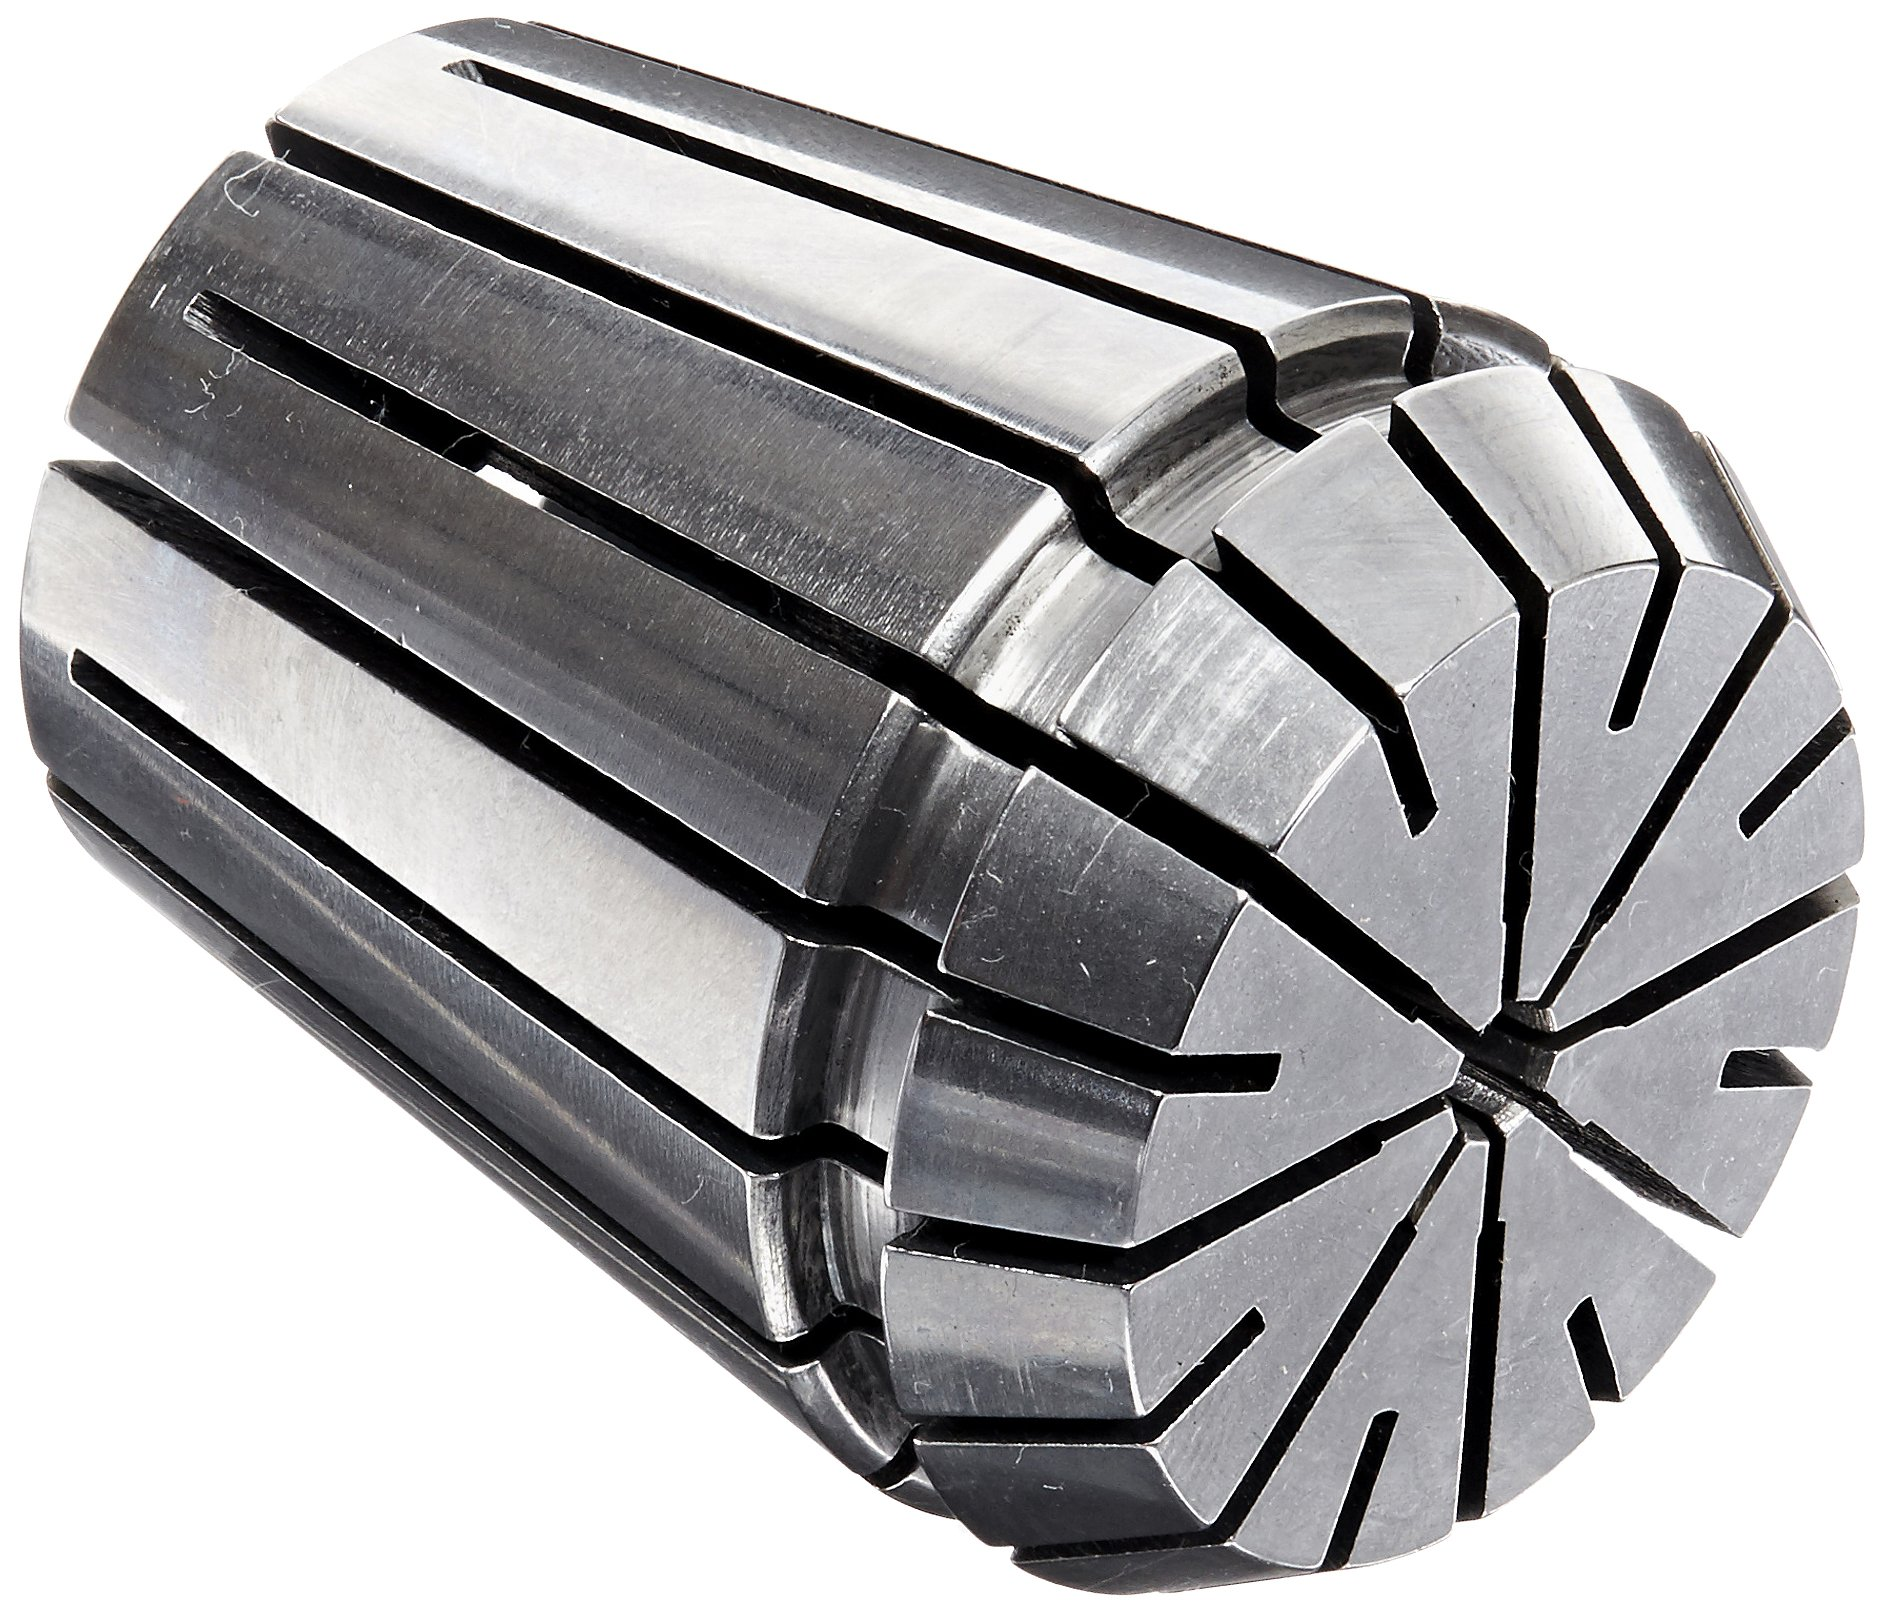 Dorian Tool ER32 Alloy Steel Ultra Precision Collet, 0.086'' - 0.125'' Hole Size